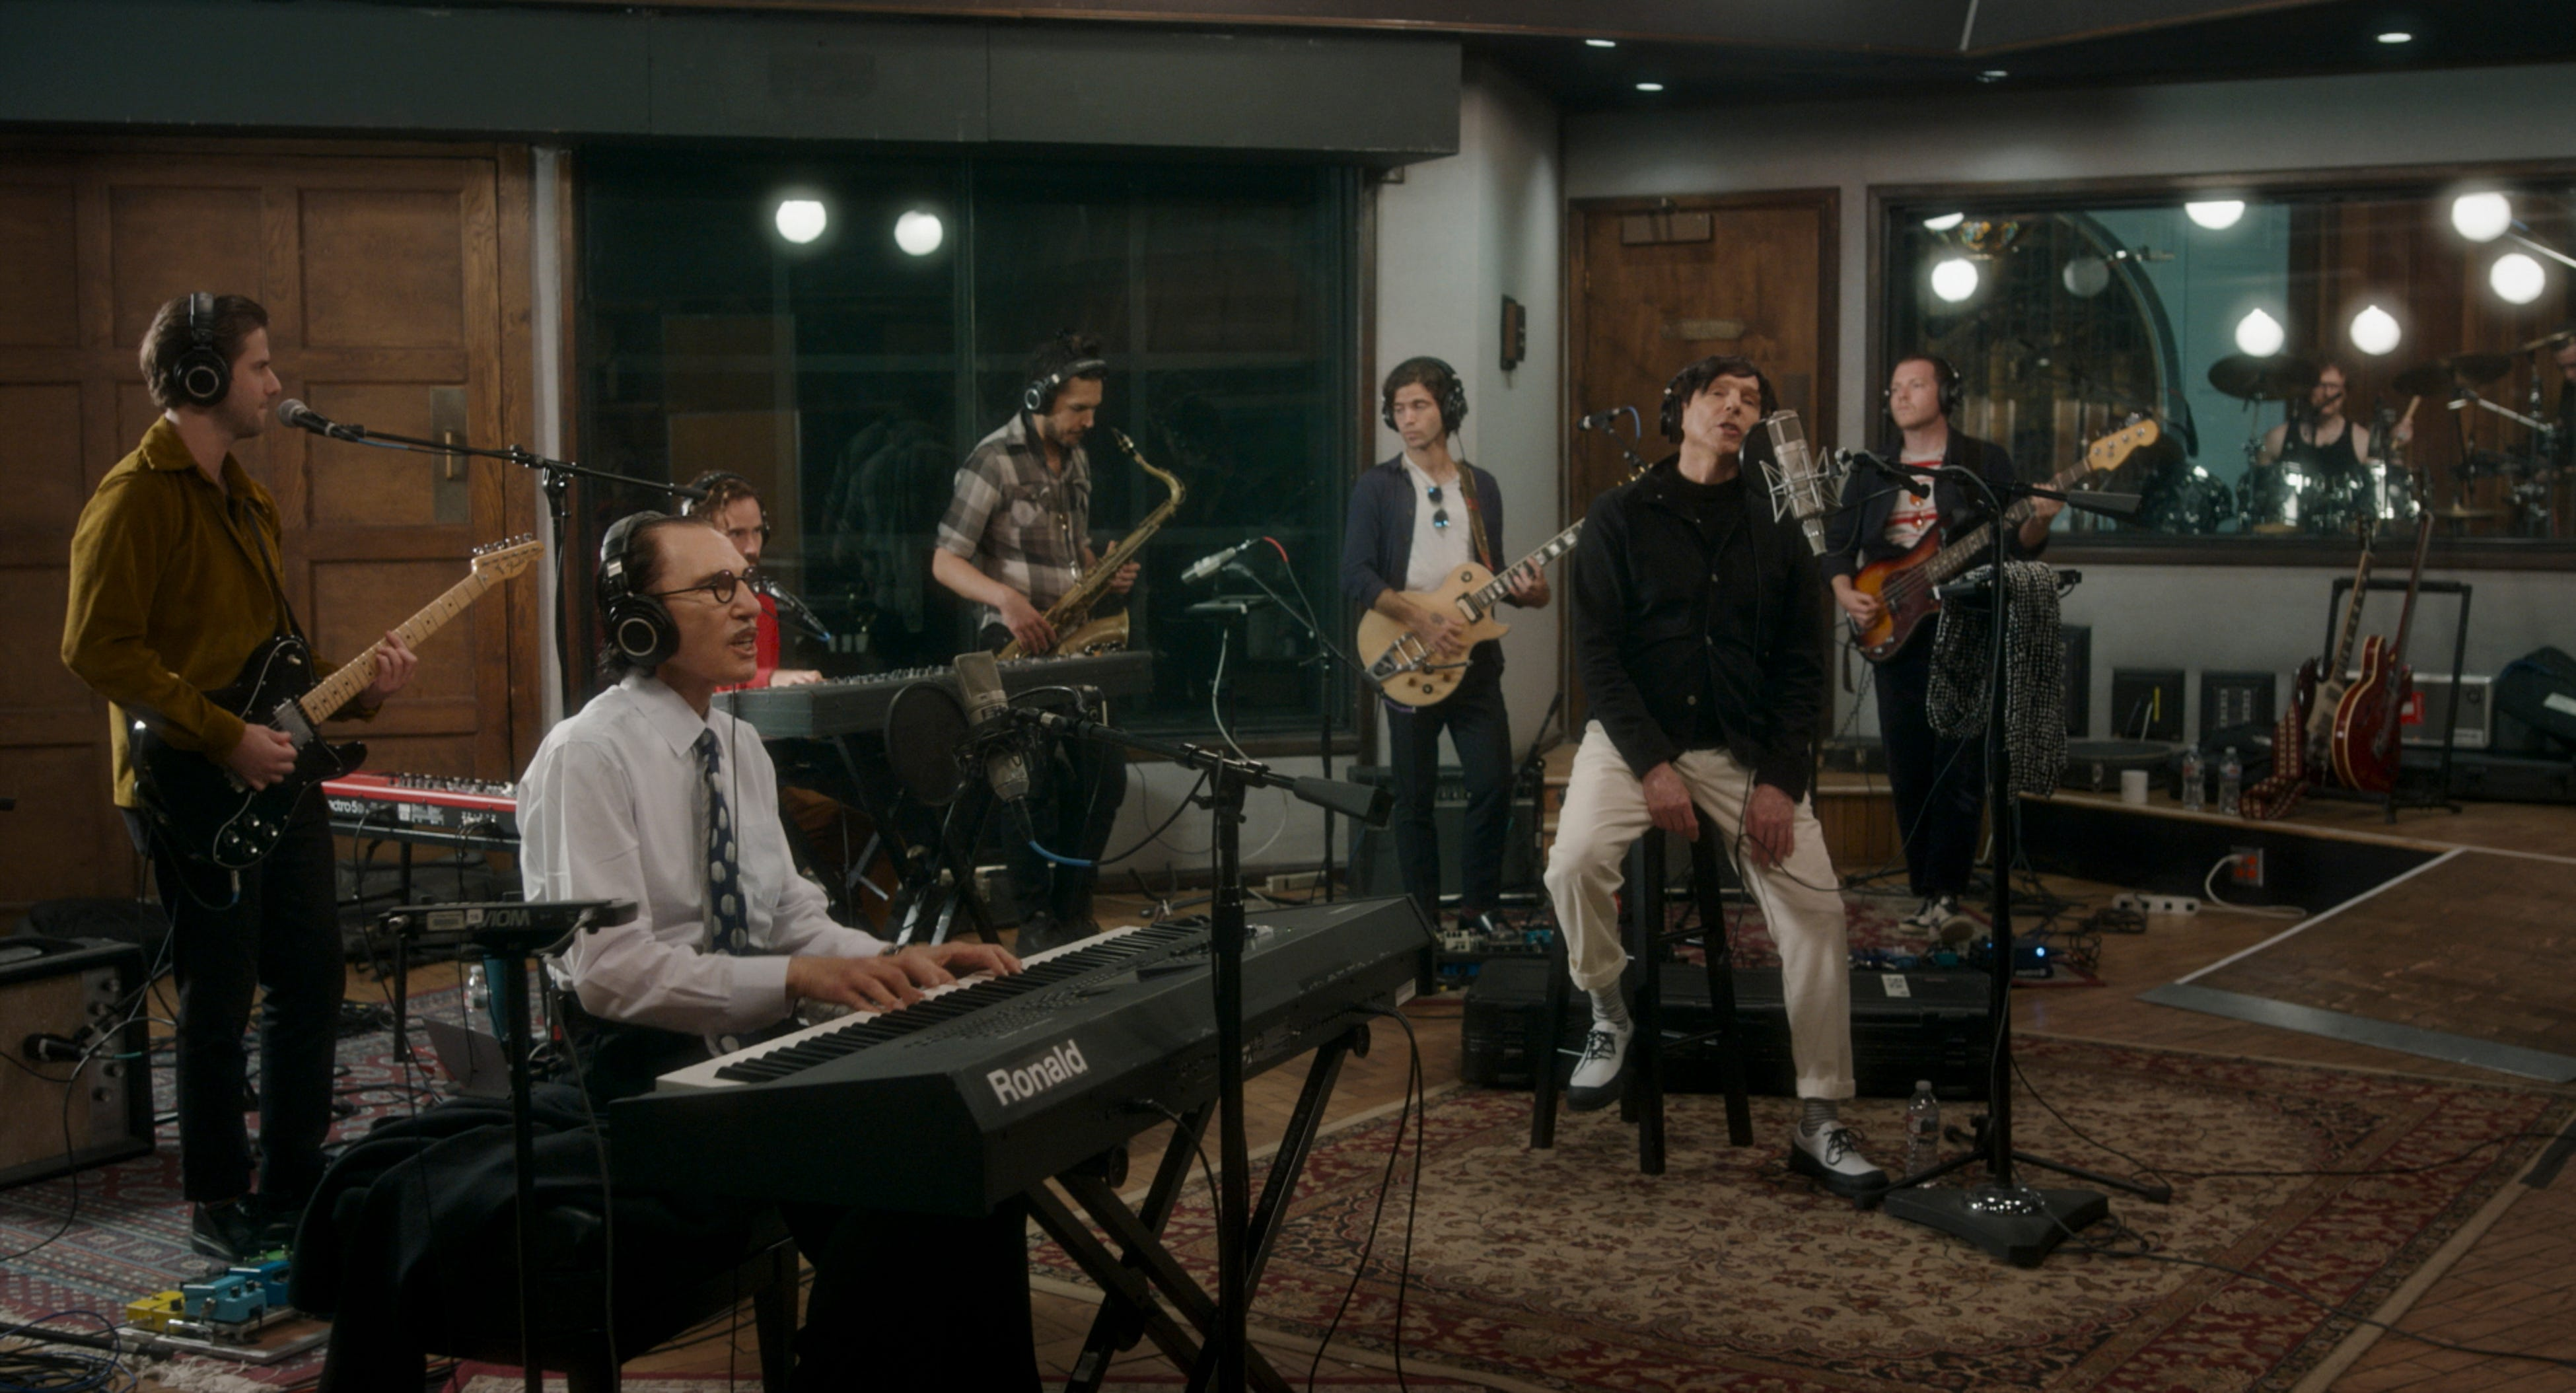 Review: Even a great Adam Driver and cool Sparks tunes can't save the very weird 'Annette'